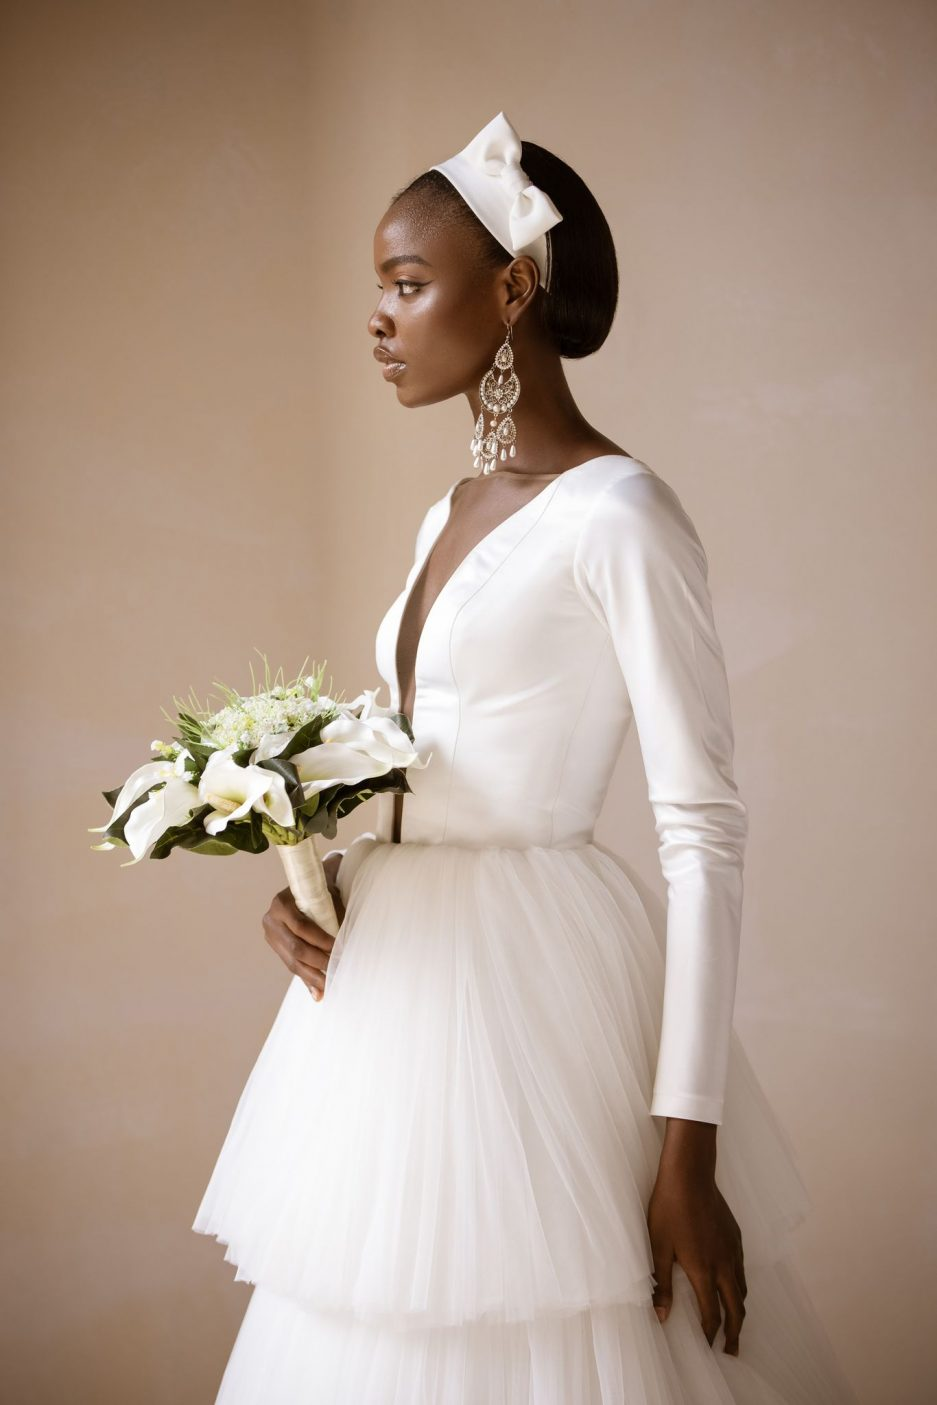 bespoke bridal suit and wedding gown